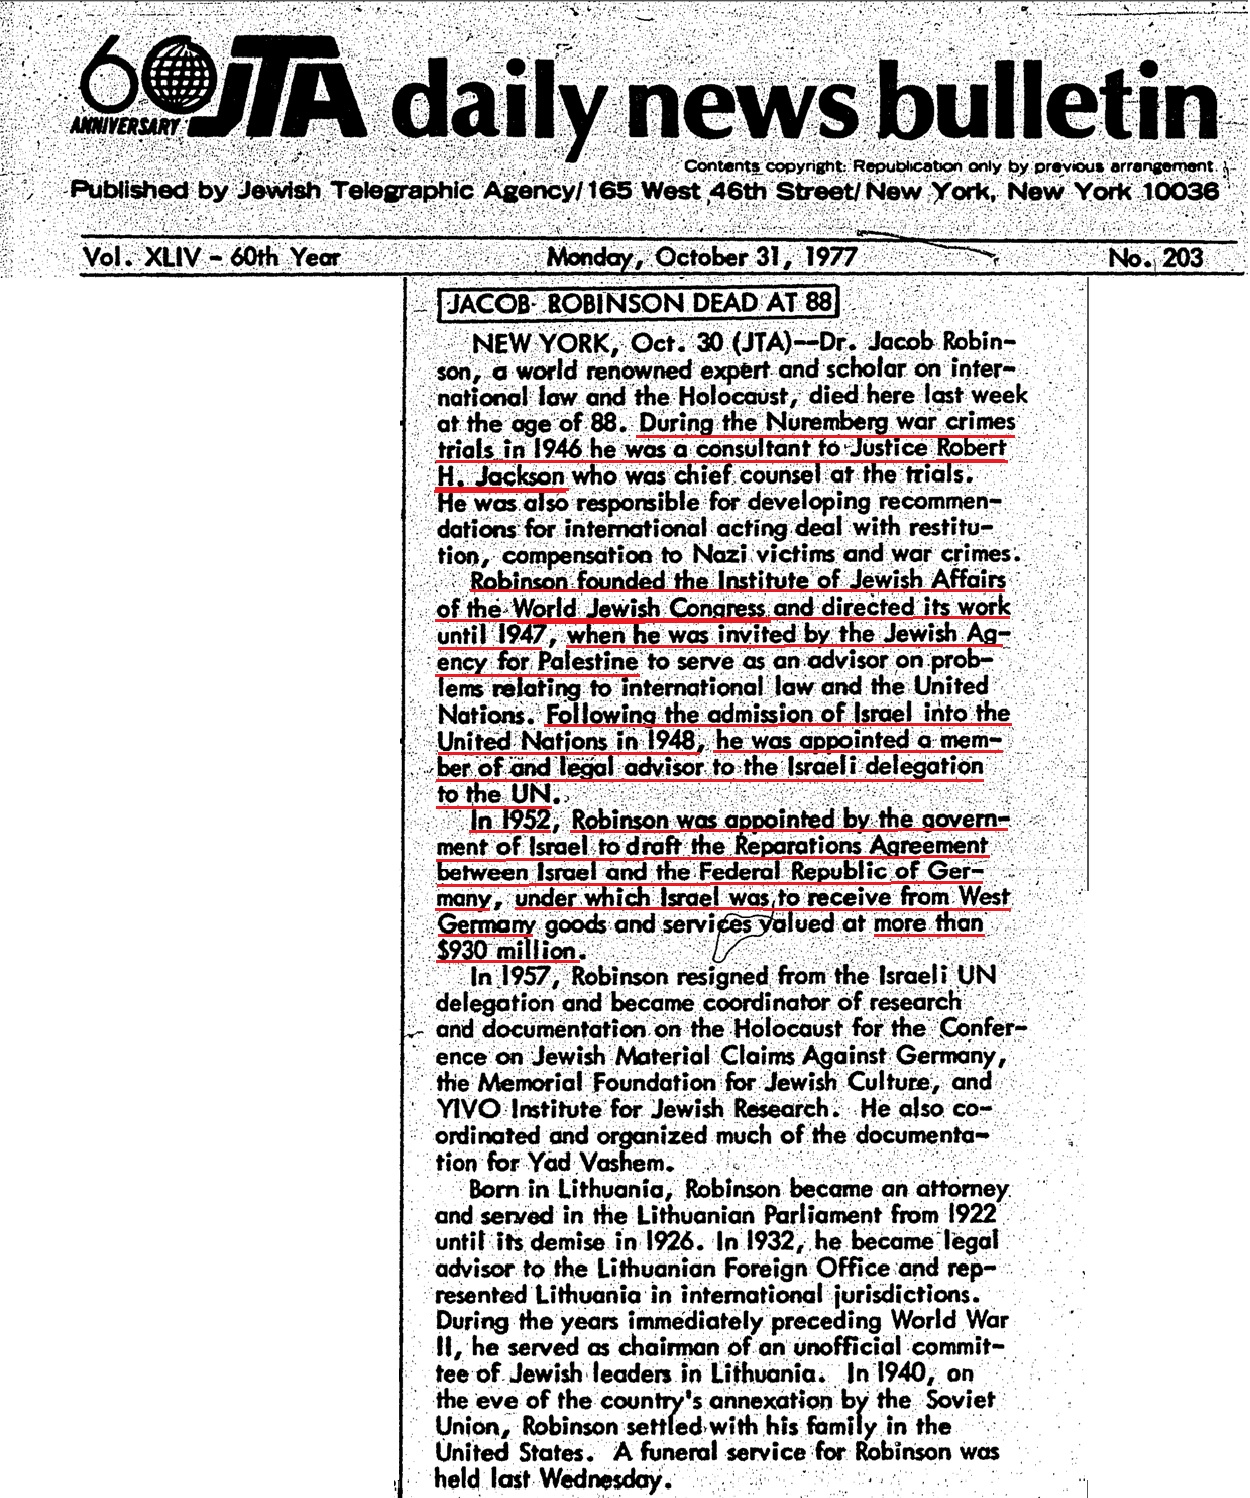 Holocaust - JTA - October 1977 - Zionist Jacob Robinson consultant to Robert Jackson at Nuremberg.jpg